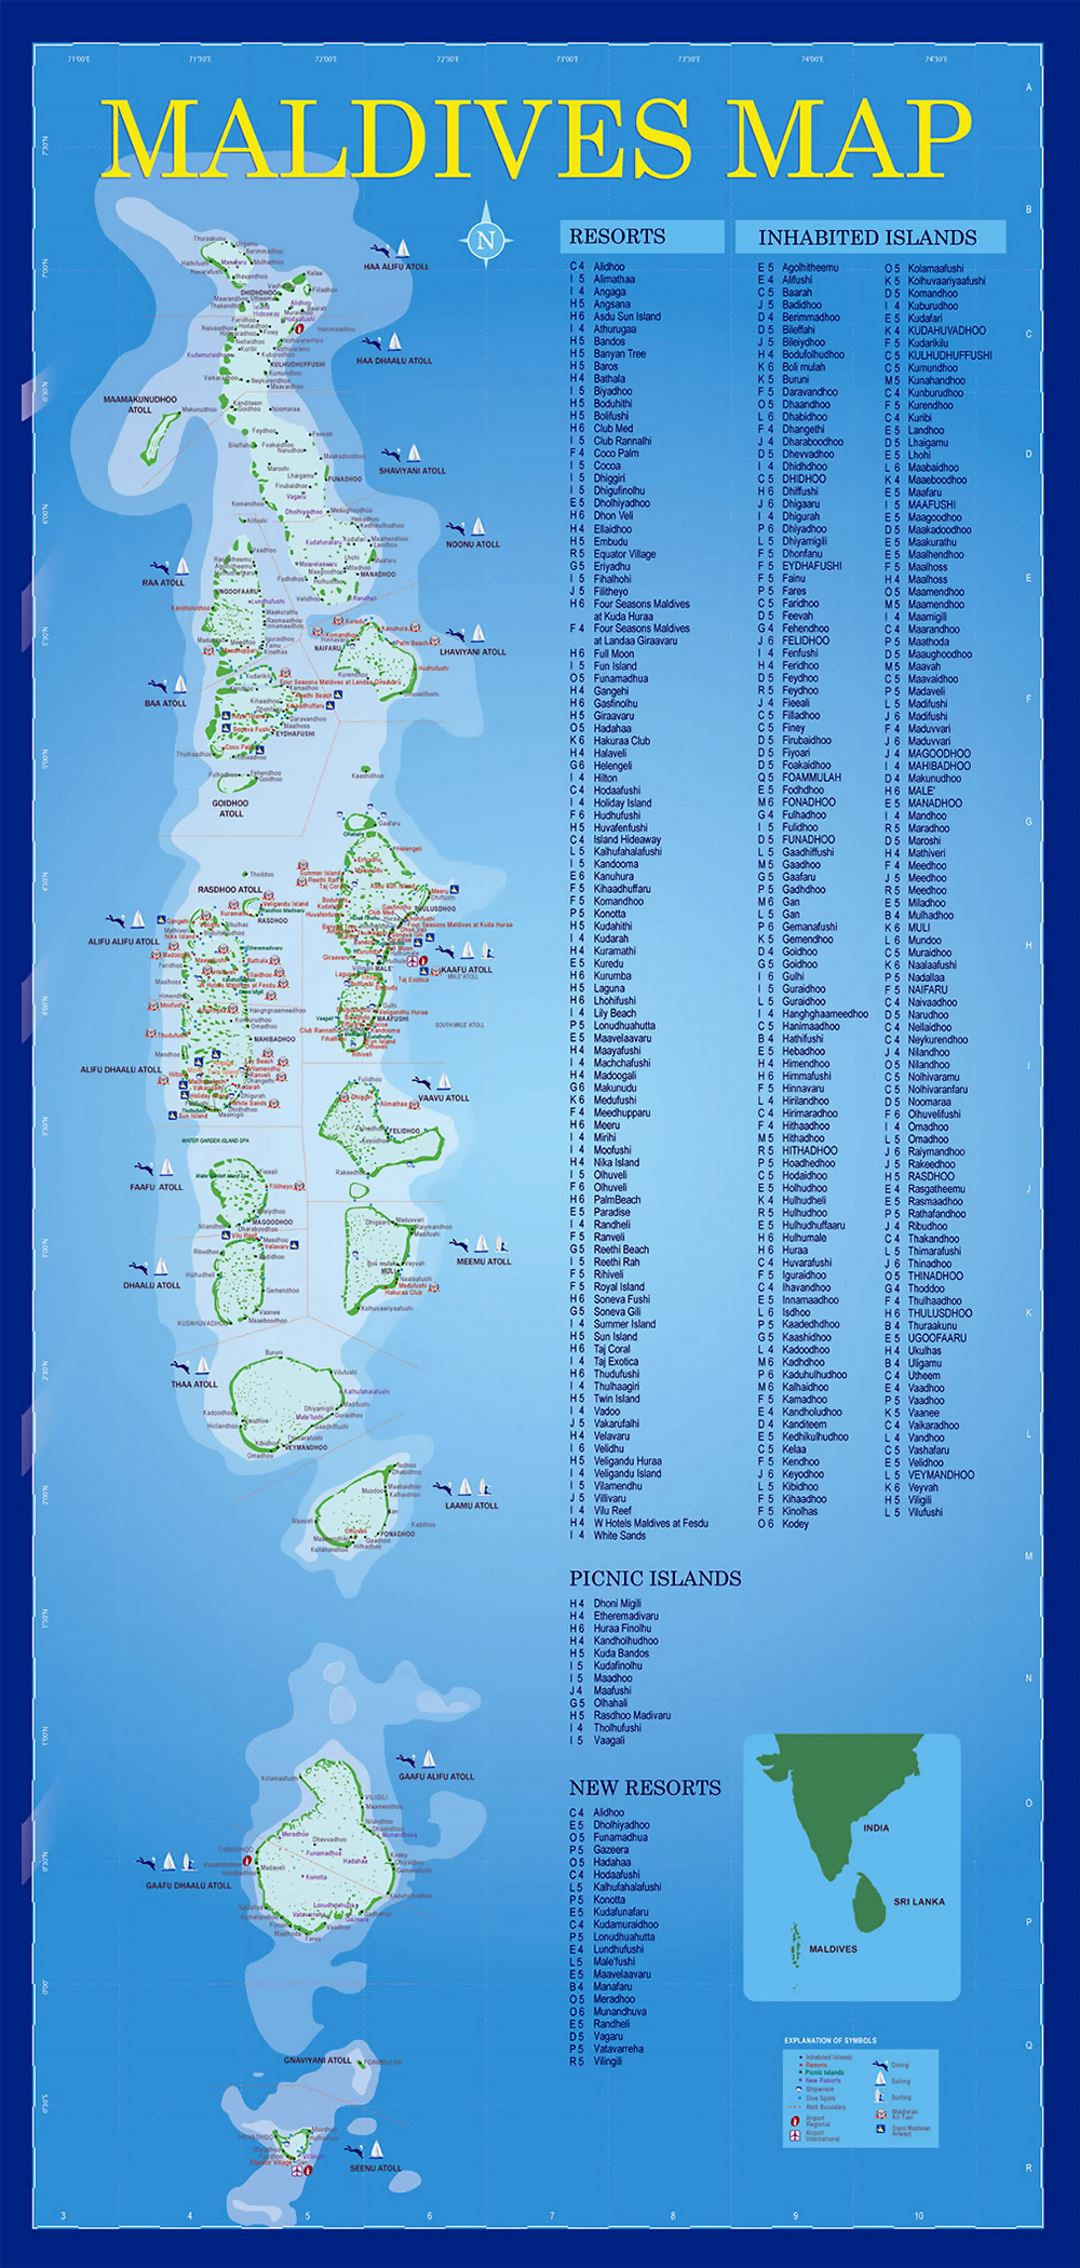 Resorts map of Maldives | Maldives | Asia | Mapsland | Maps ... on maldives map india, ayada maldives on map, seychelles resorts map, reunion resorts map, maldives world map, maldives location on map, honolulu resorts map, male maldives map, maldives map google, maldives airport map, turks and caicos islands resorts map, honduras resorts map, bermuda resorts map, maldives climate map, lankanfushi maldives map, falkland islands resorts map, the maldives map, maldives indian ocean map, tahiti resorts map, palawan resorts map,